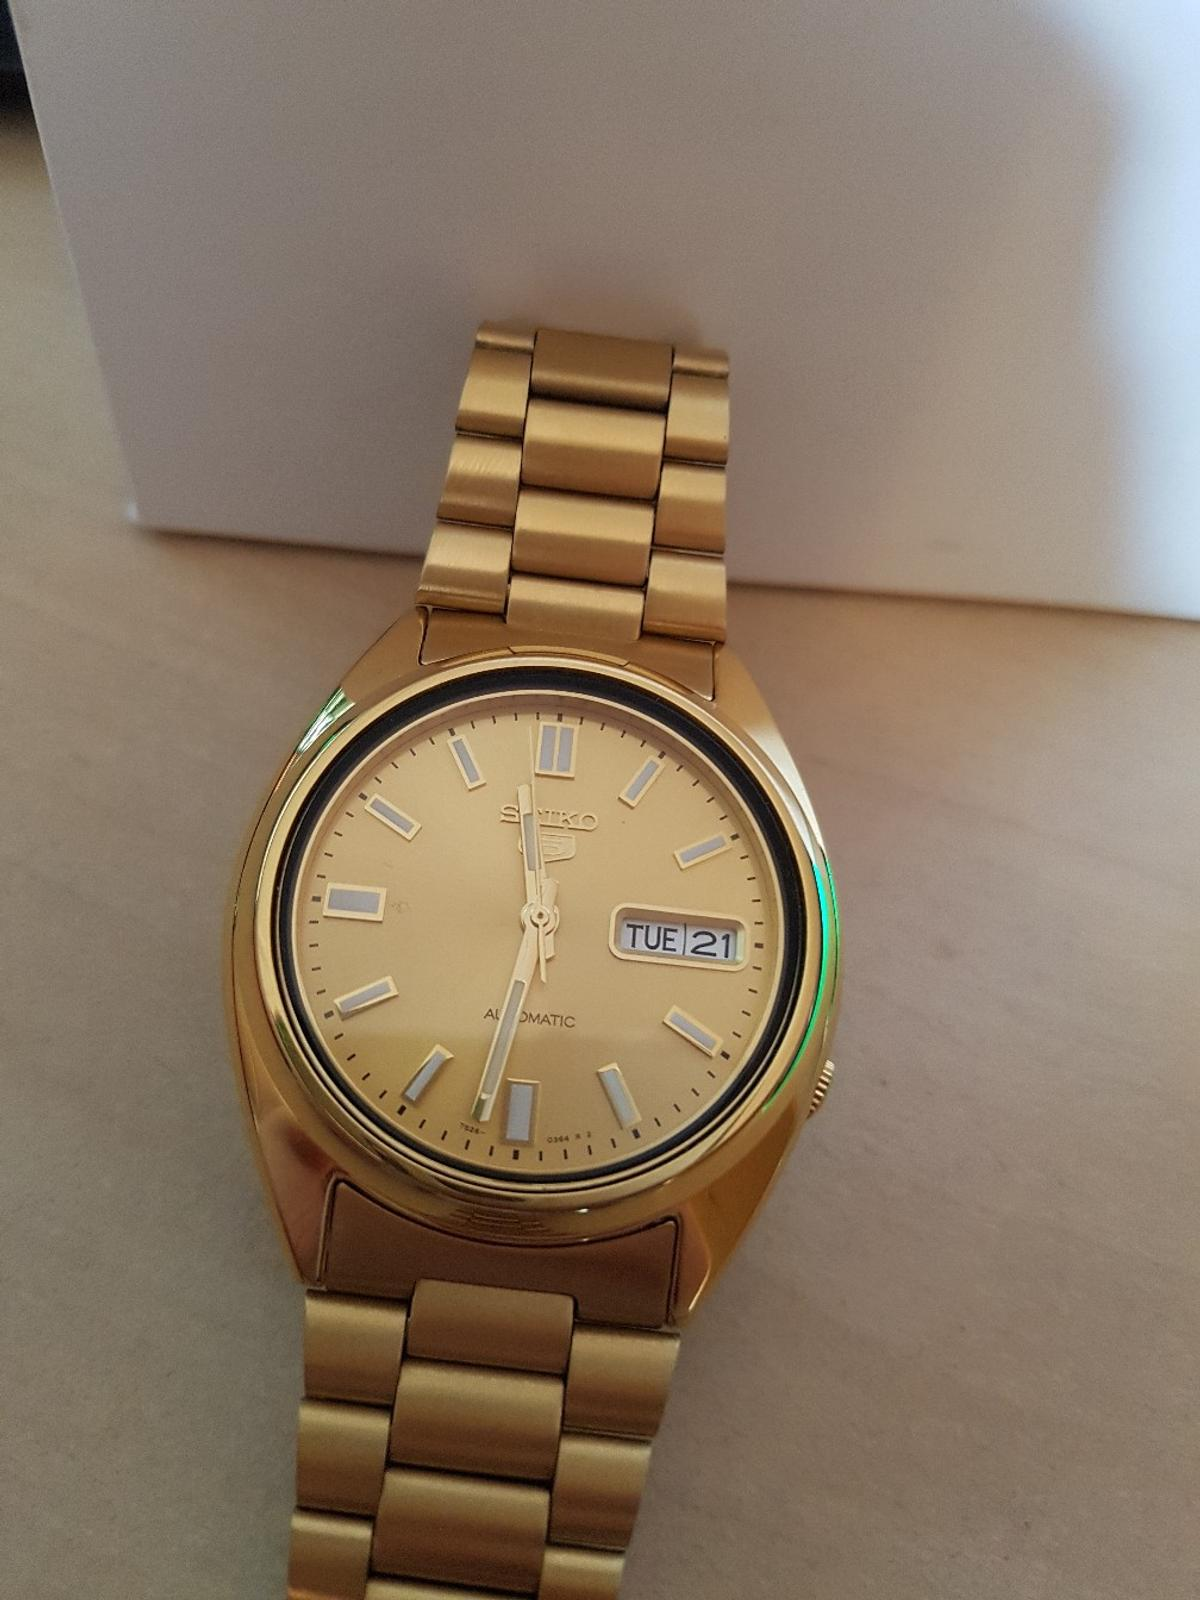 €80 Snxs 80 Mainleus 00 For In Seiko 5 95336 Gold Automatic l1F3TKJc